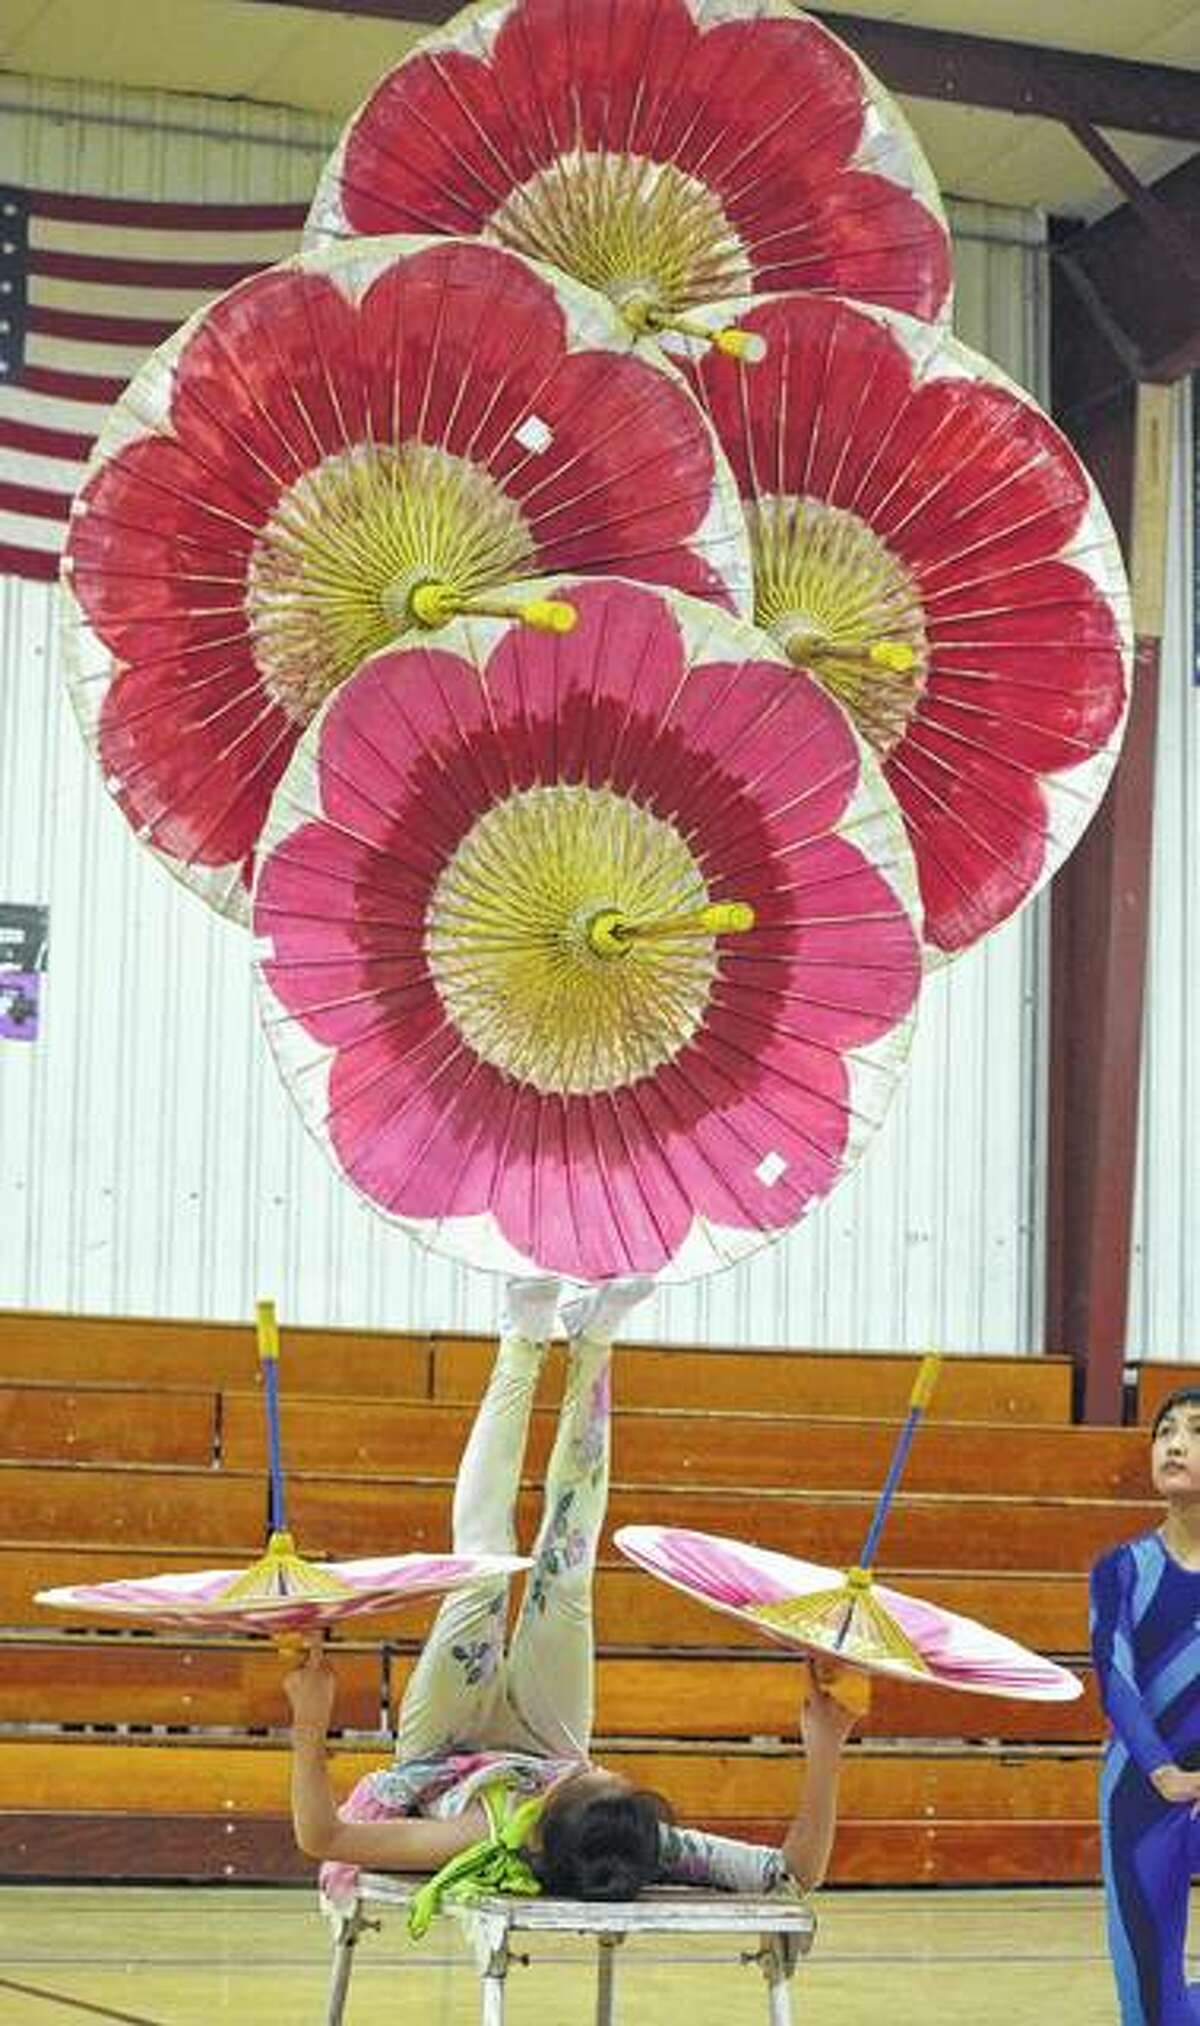 Wang Ling Yue (Ava), 12, a performer with the Fabulous Chinese Acrobats, does a balancing act using Chinese umbrellas Tuesday at North Greene Elementary School.